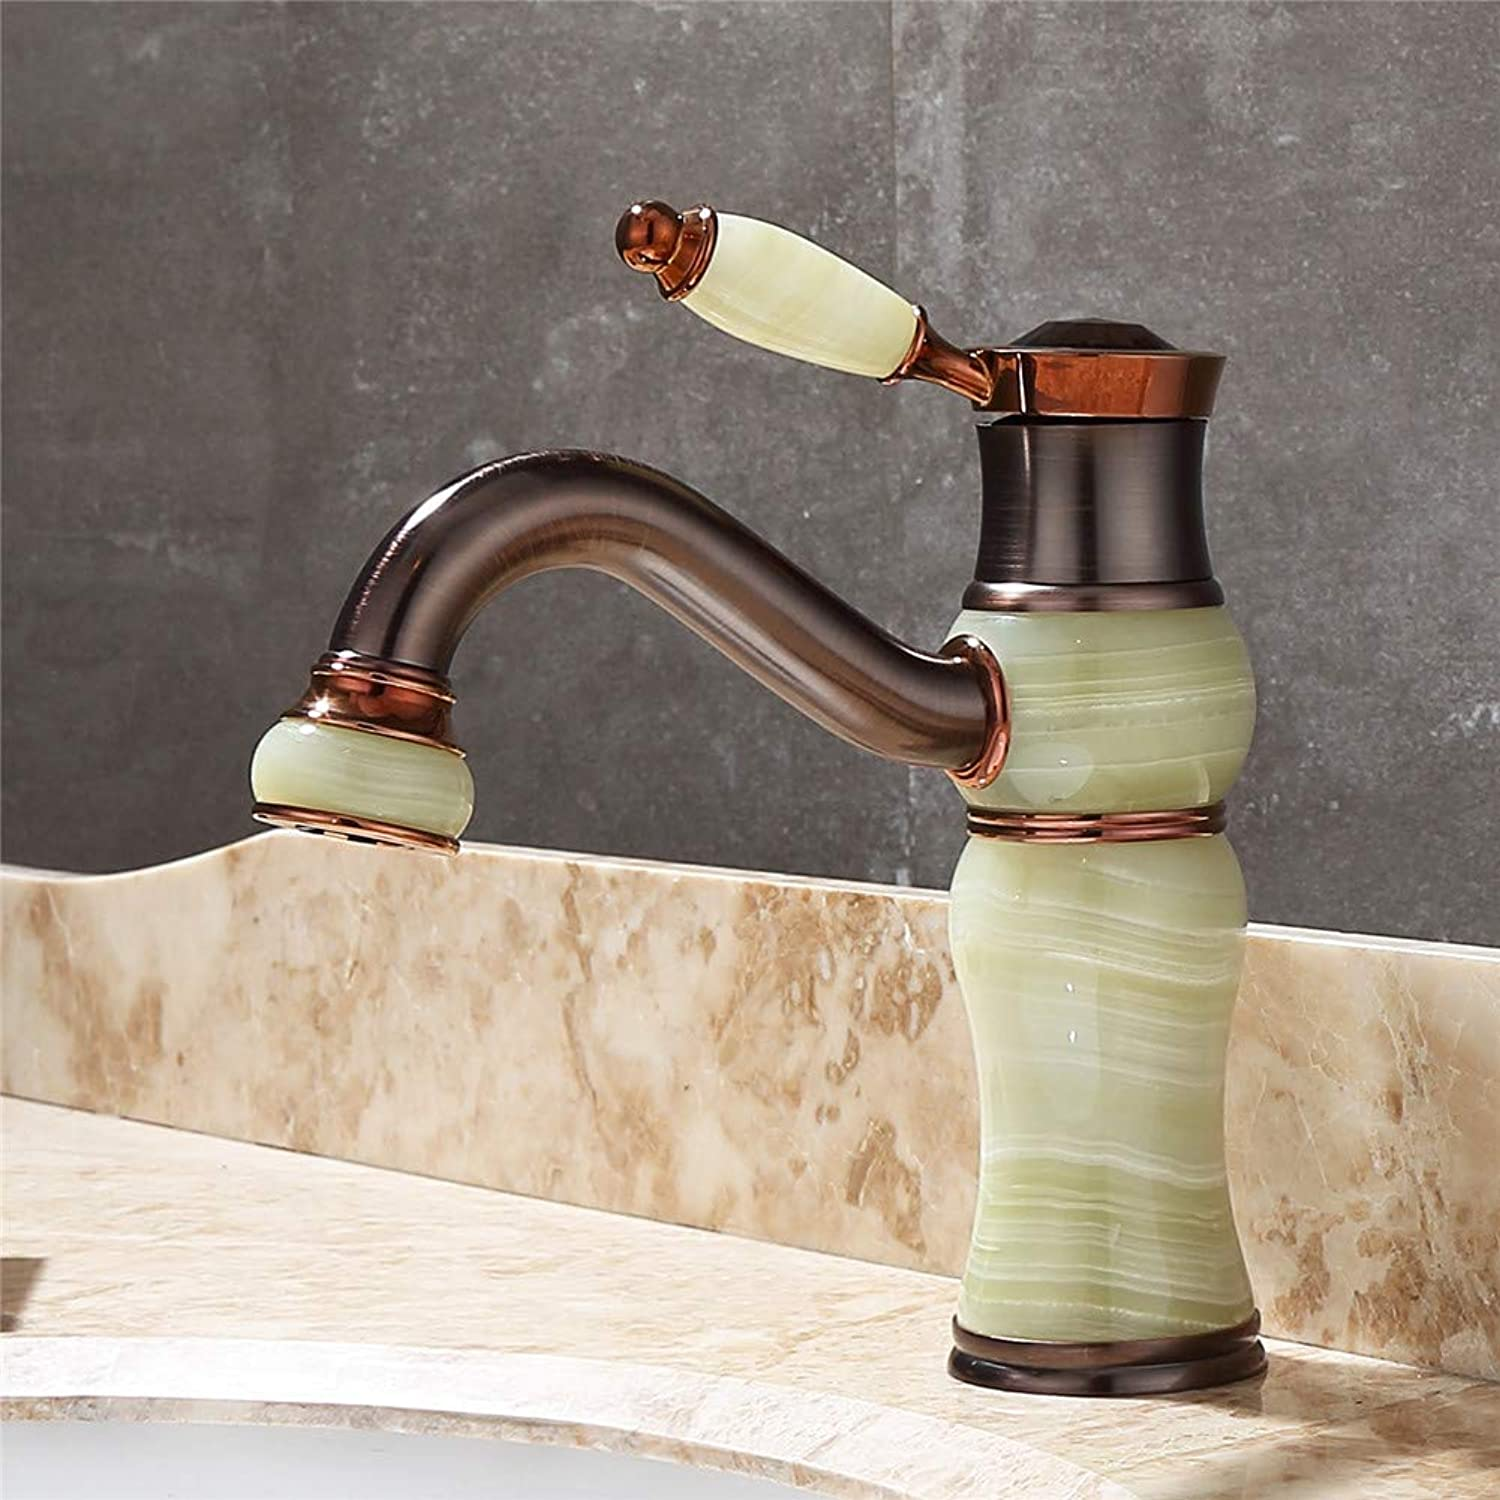 SEBAS HOME Bathroom Sink Taps Copper Natural Marble Black Bronze Wash Basin Hot And Cold Water Faucet pink gold European Antique Faucet